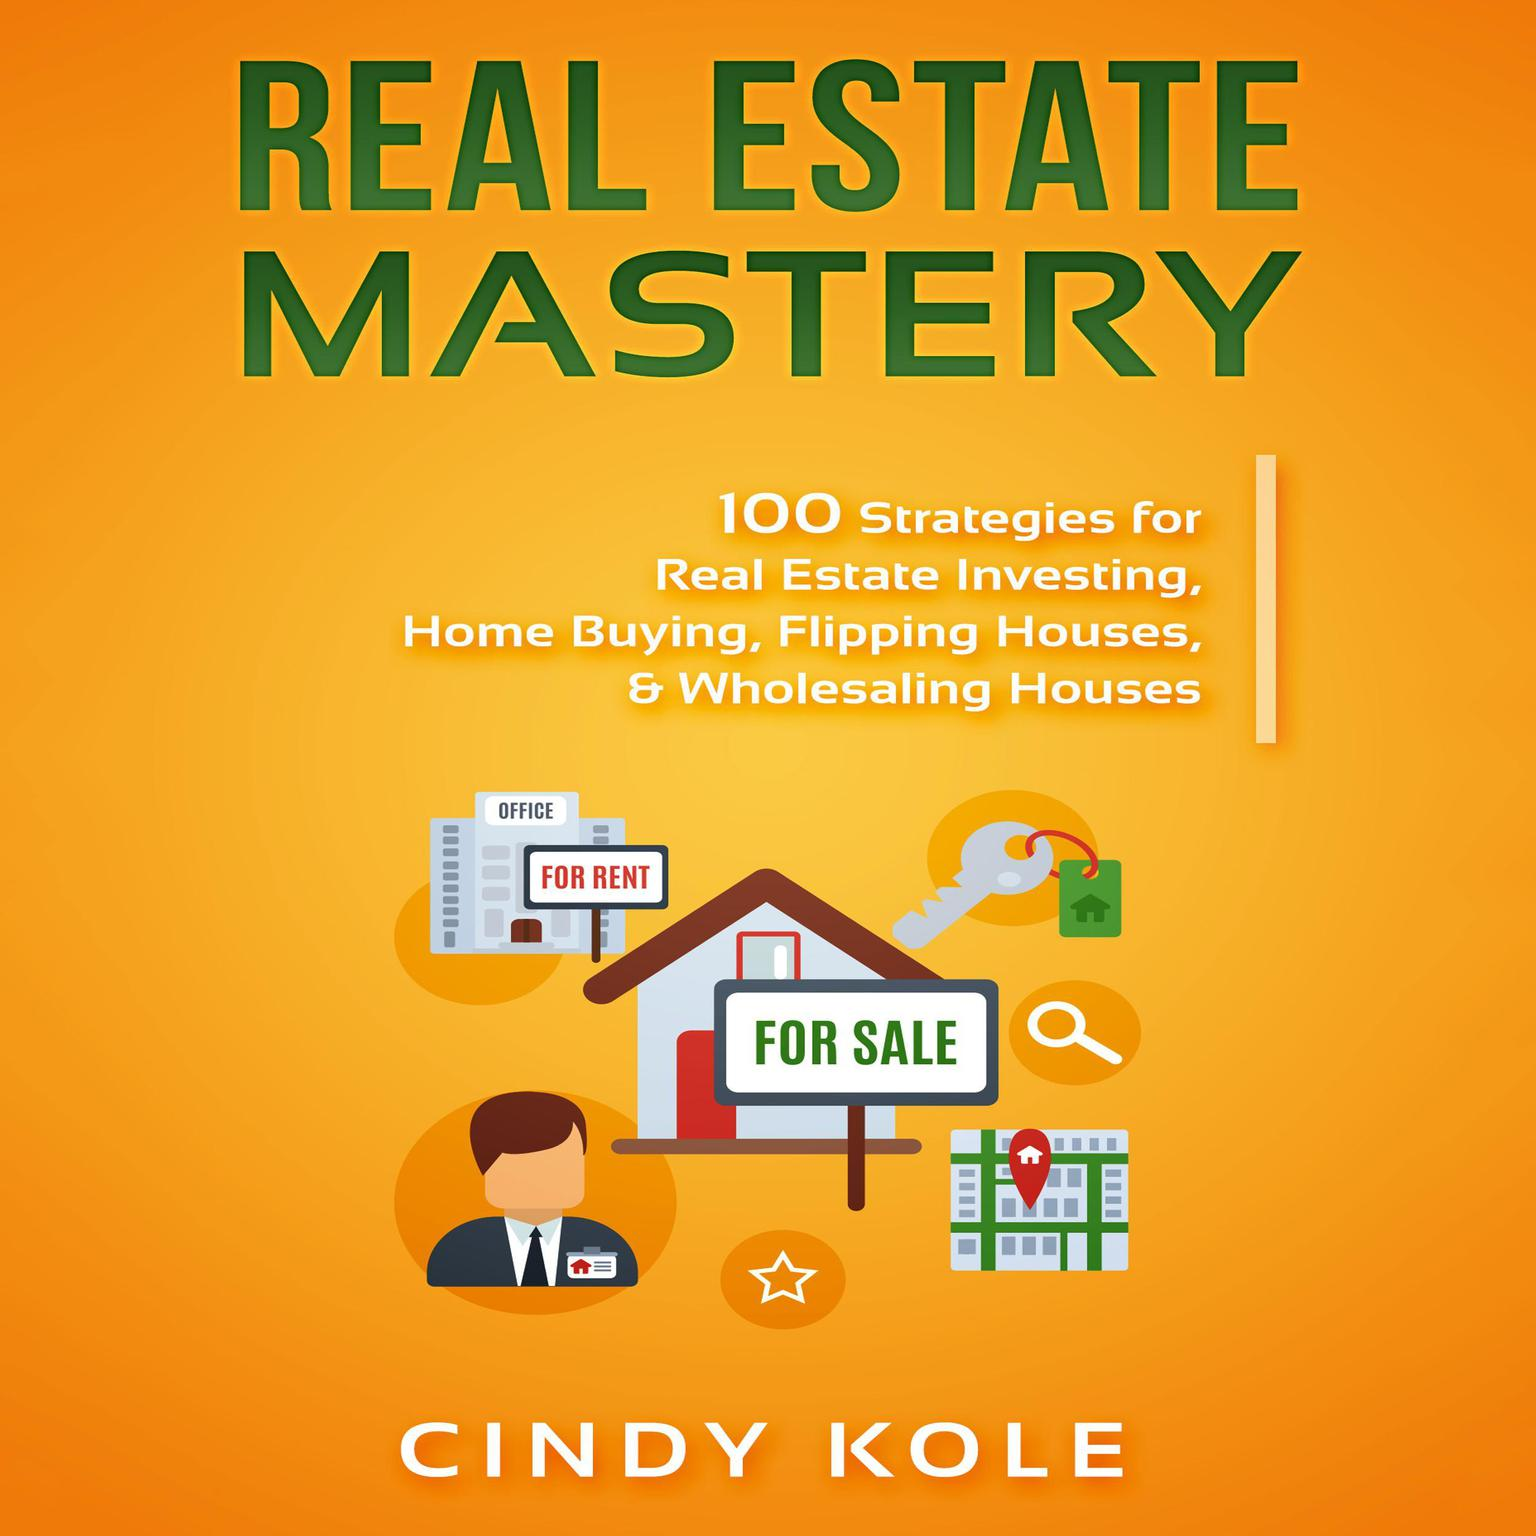 Real Estate Mastery: 100 Strategies for Real Estate Investing, Home Buying, Flipping Houses, & Wholesaling Houses (LLC Small Business, Real Estate Agent Sales, Money Making Entrepreneur Series) Audiobook, by Cindy Kole